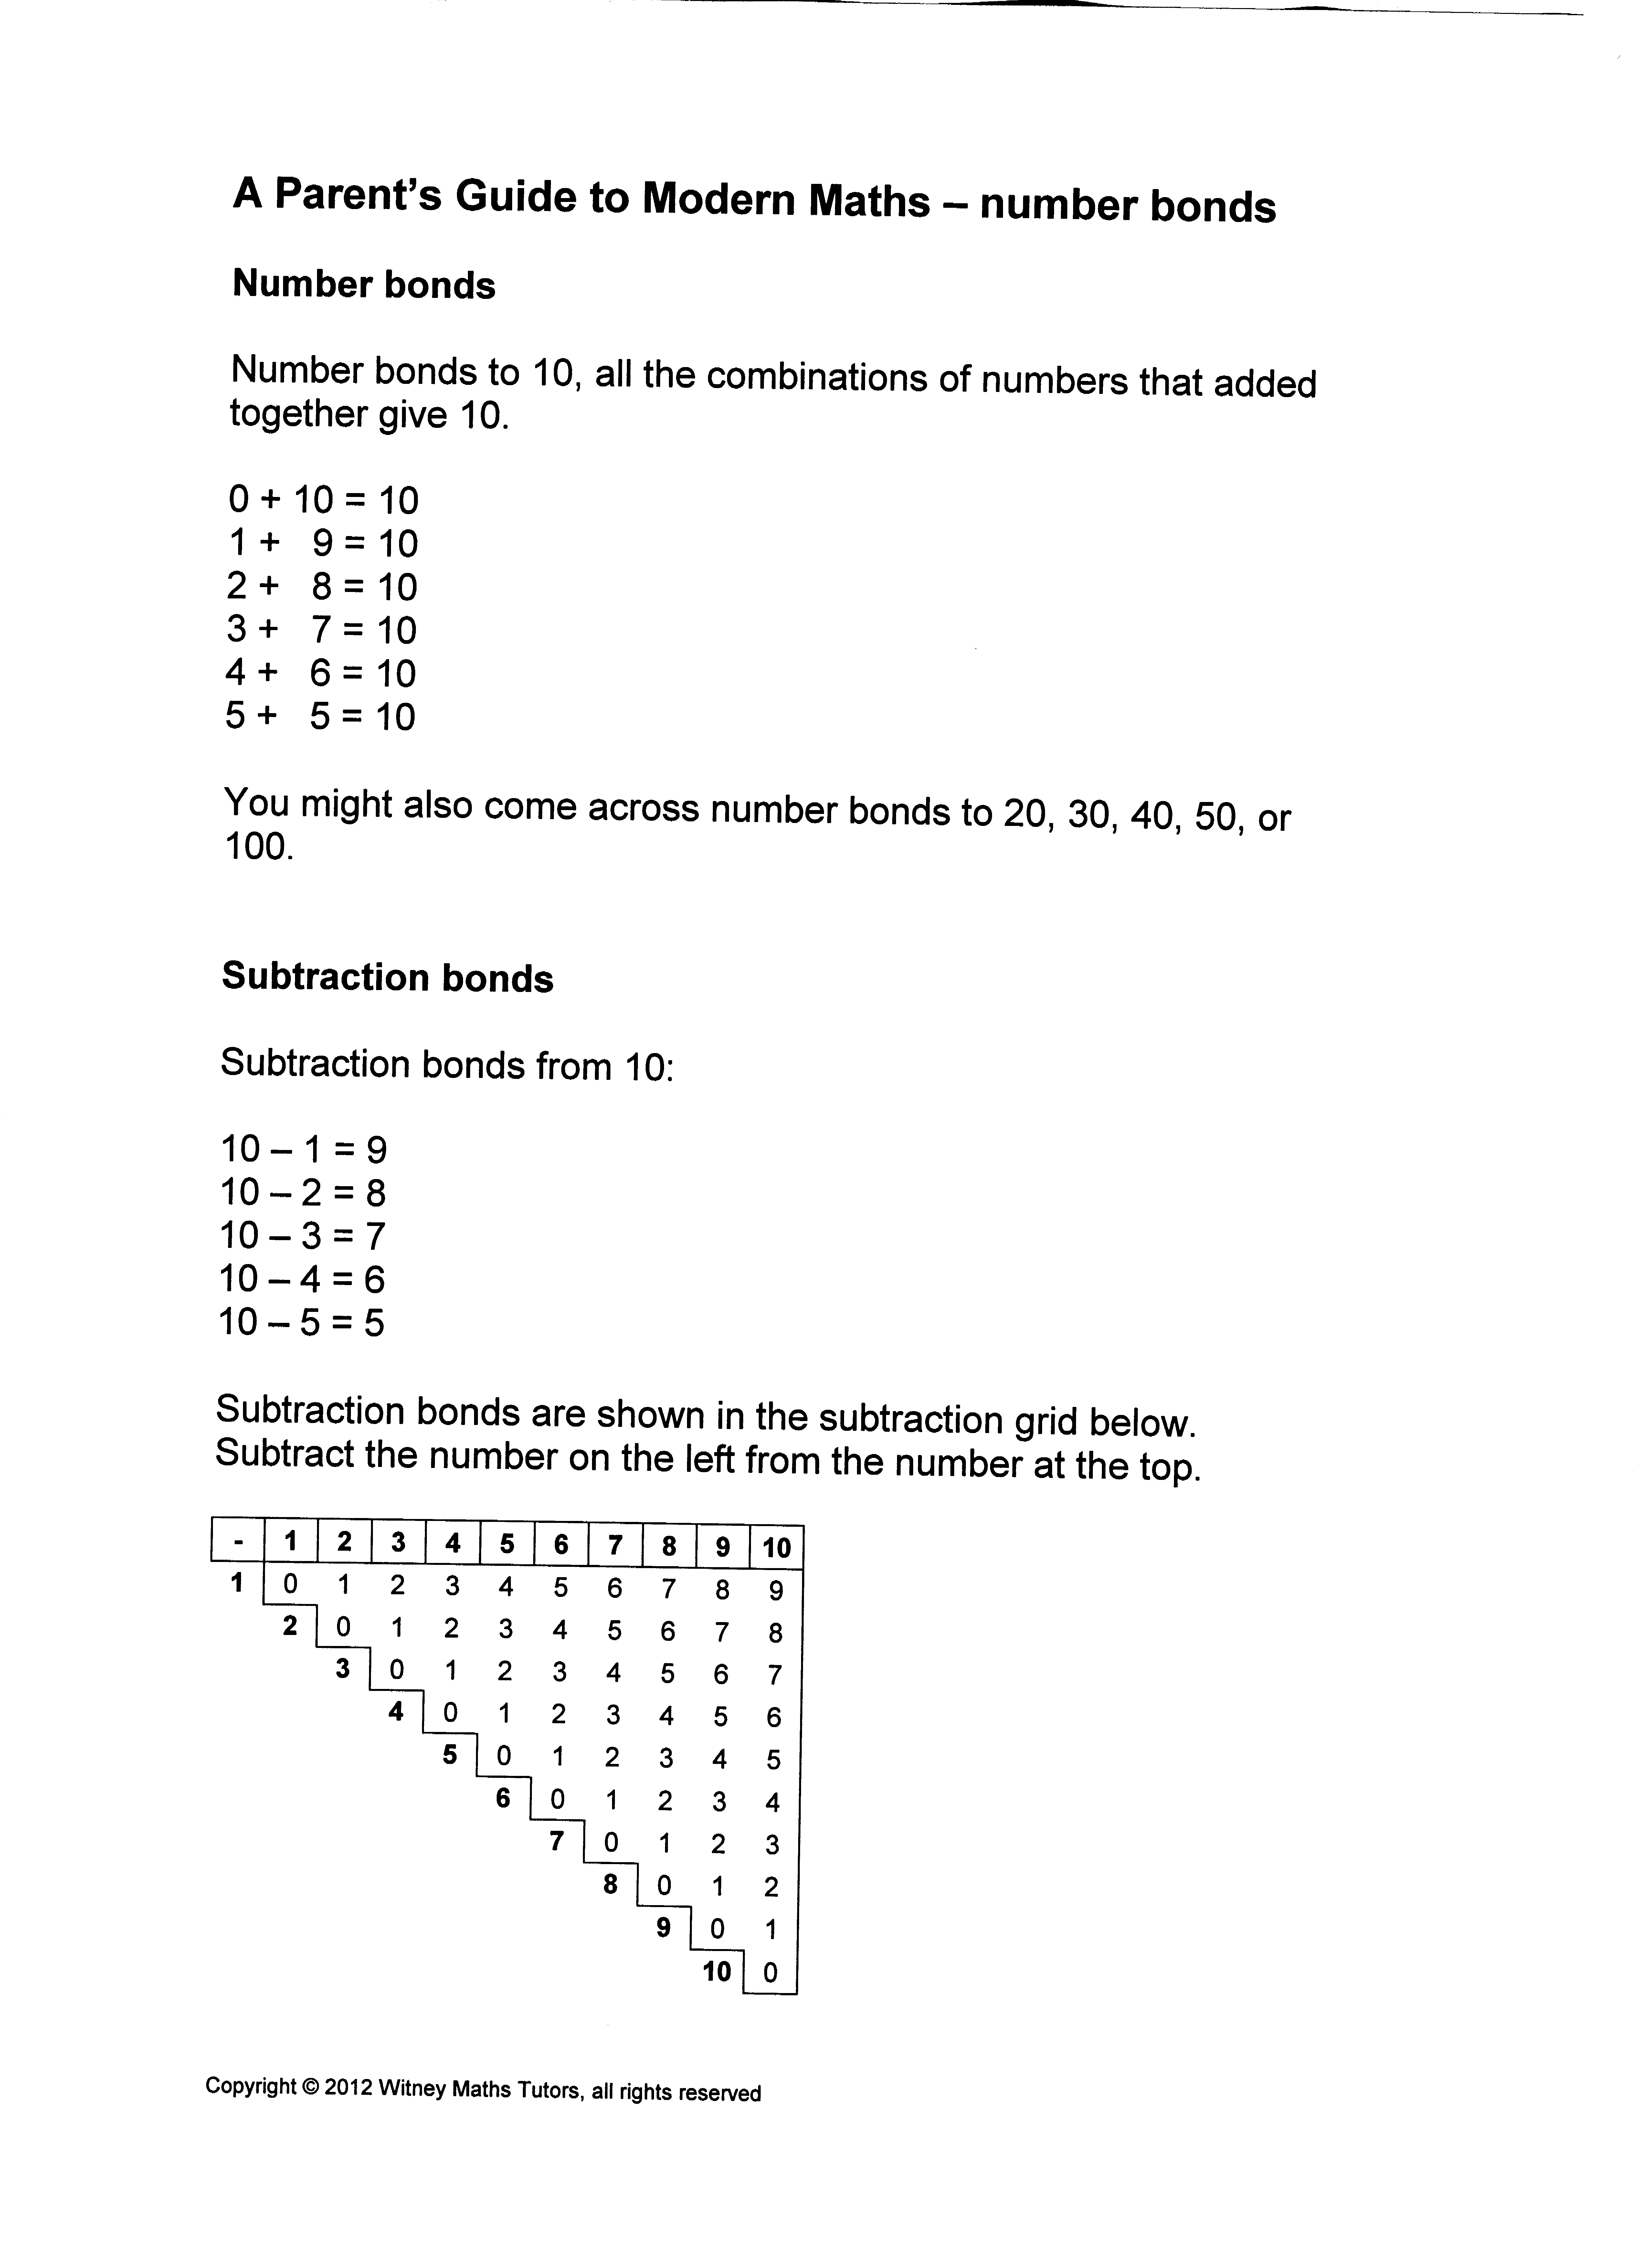 15 Best Images Of Number Bonds Singapore Math